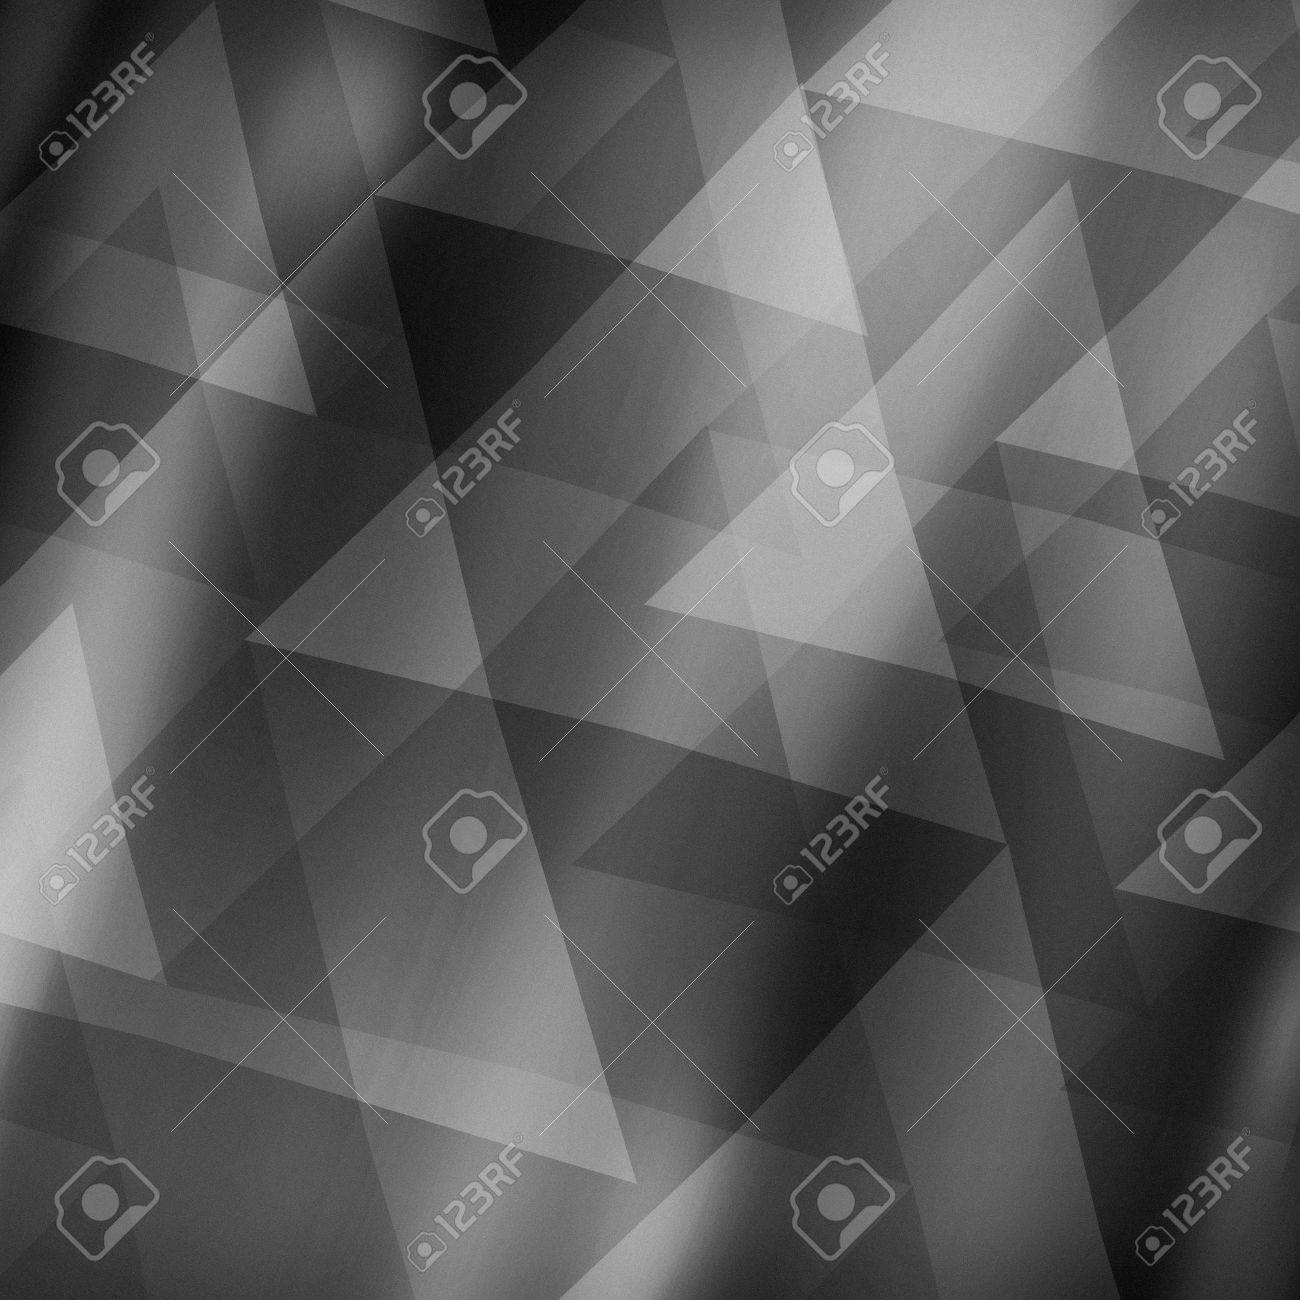 Black Dark Grey Background Abstract Design Texture High Resolution